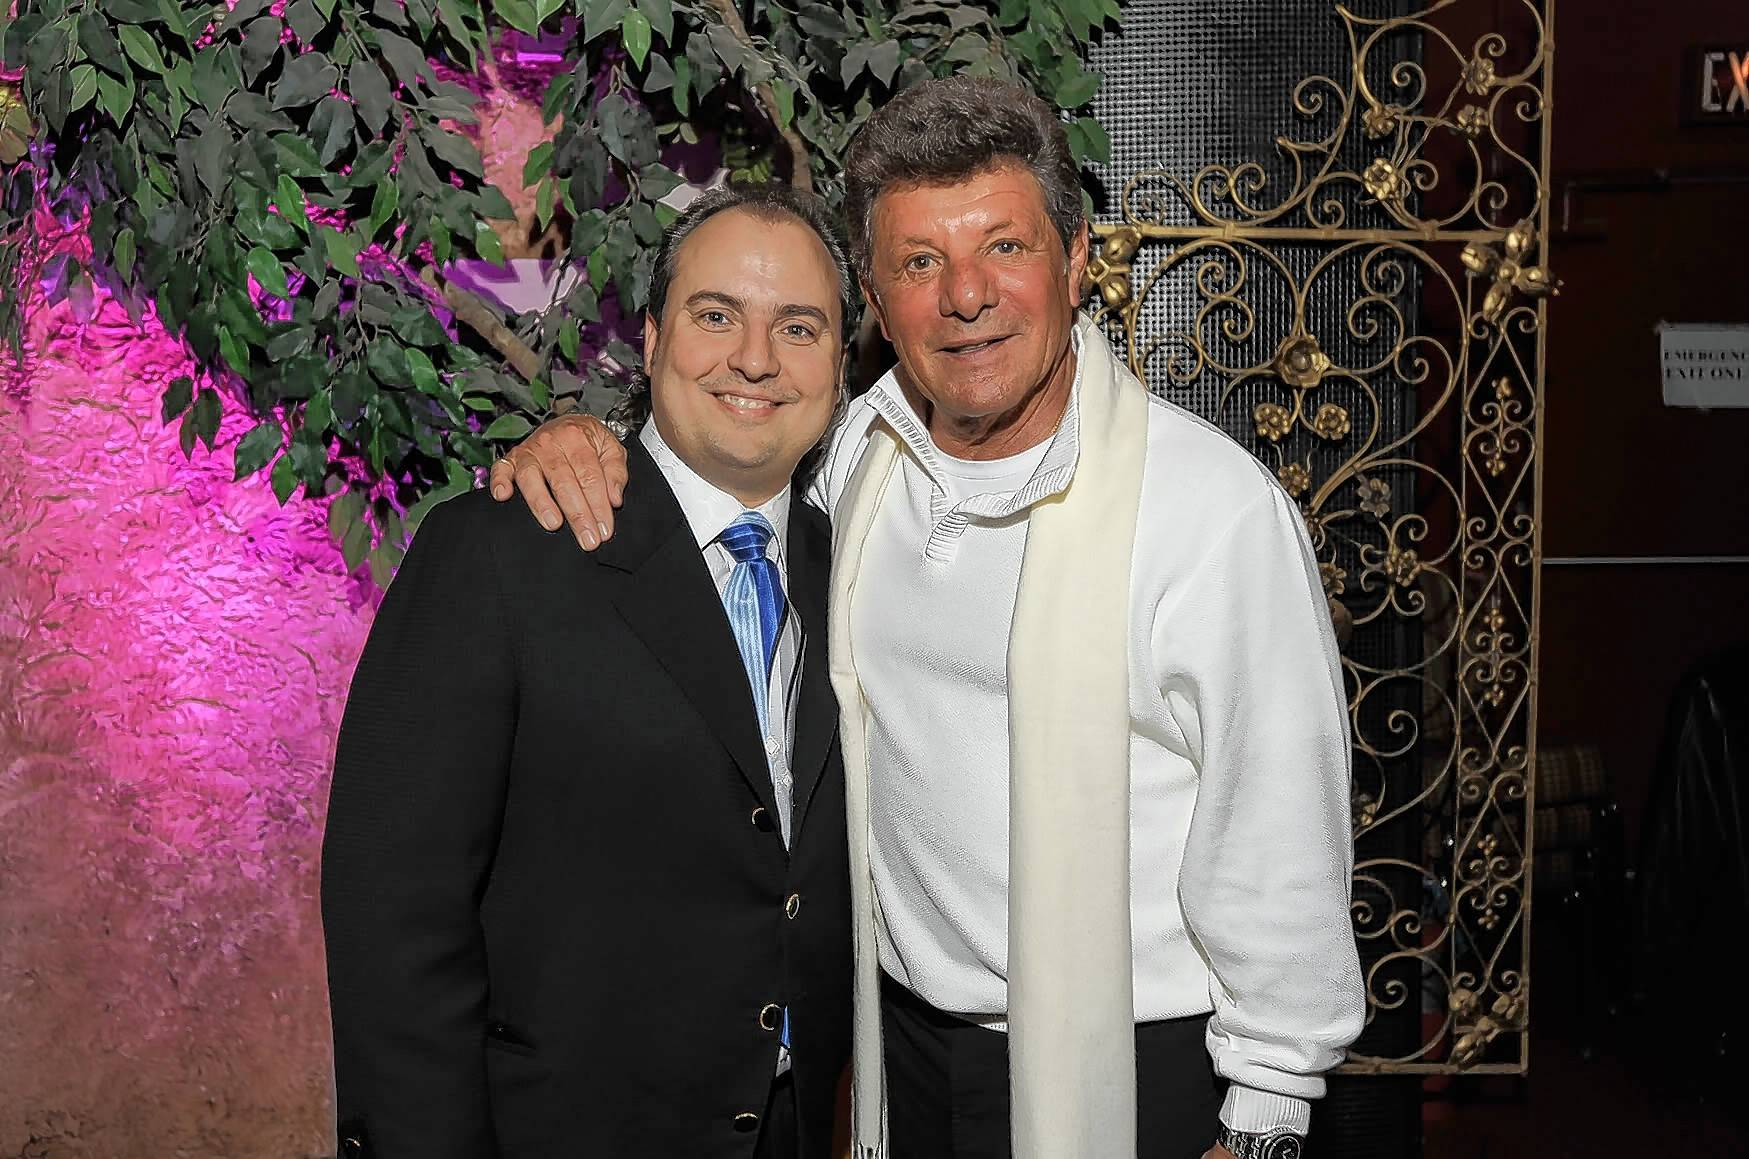 Arcada Theatre owner Ron Onesti, left, will welcome recording artist Frankie Avalon, right, back to St. Charles on Mother's Day.